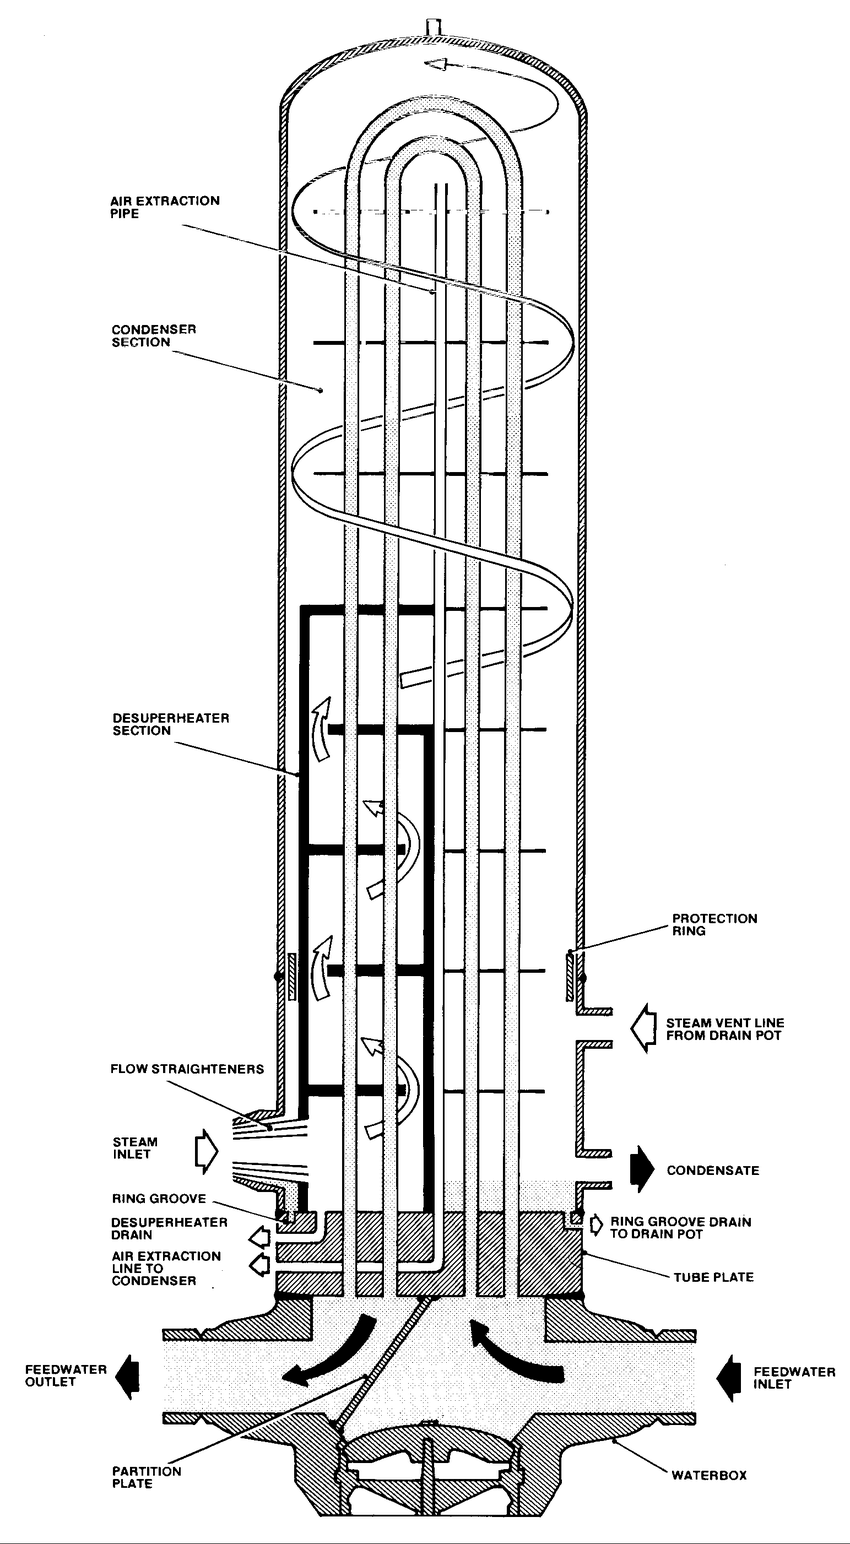 medium resolution of schematic drawing of hp heater at a power station selected for the study